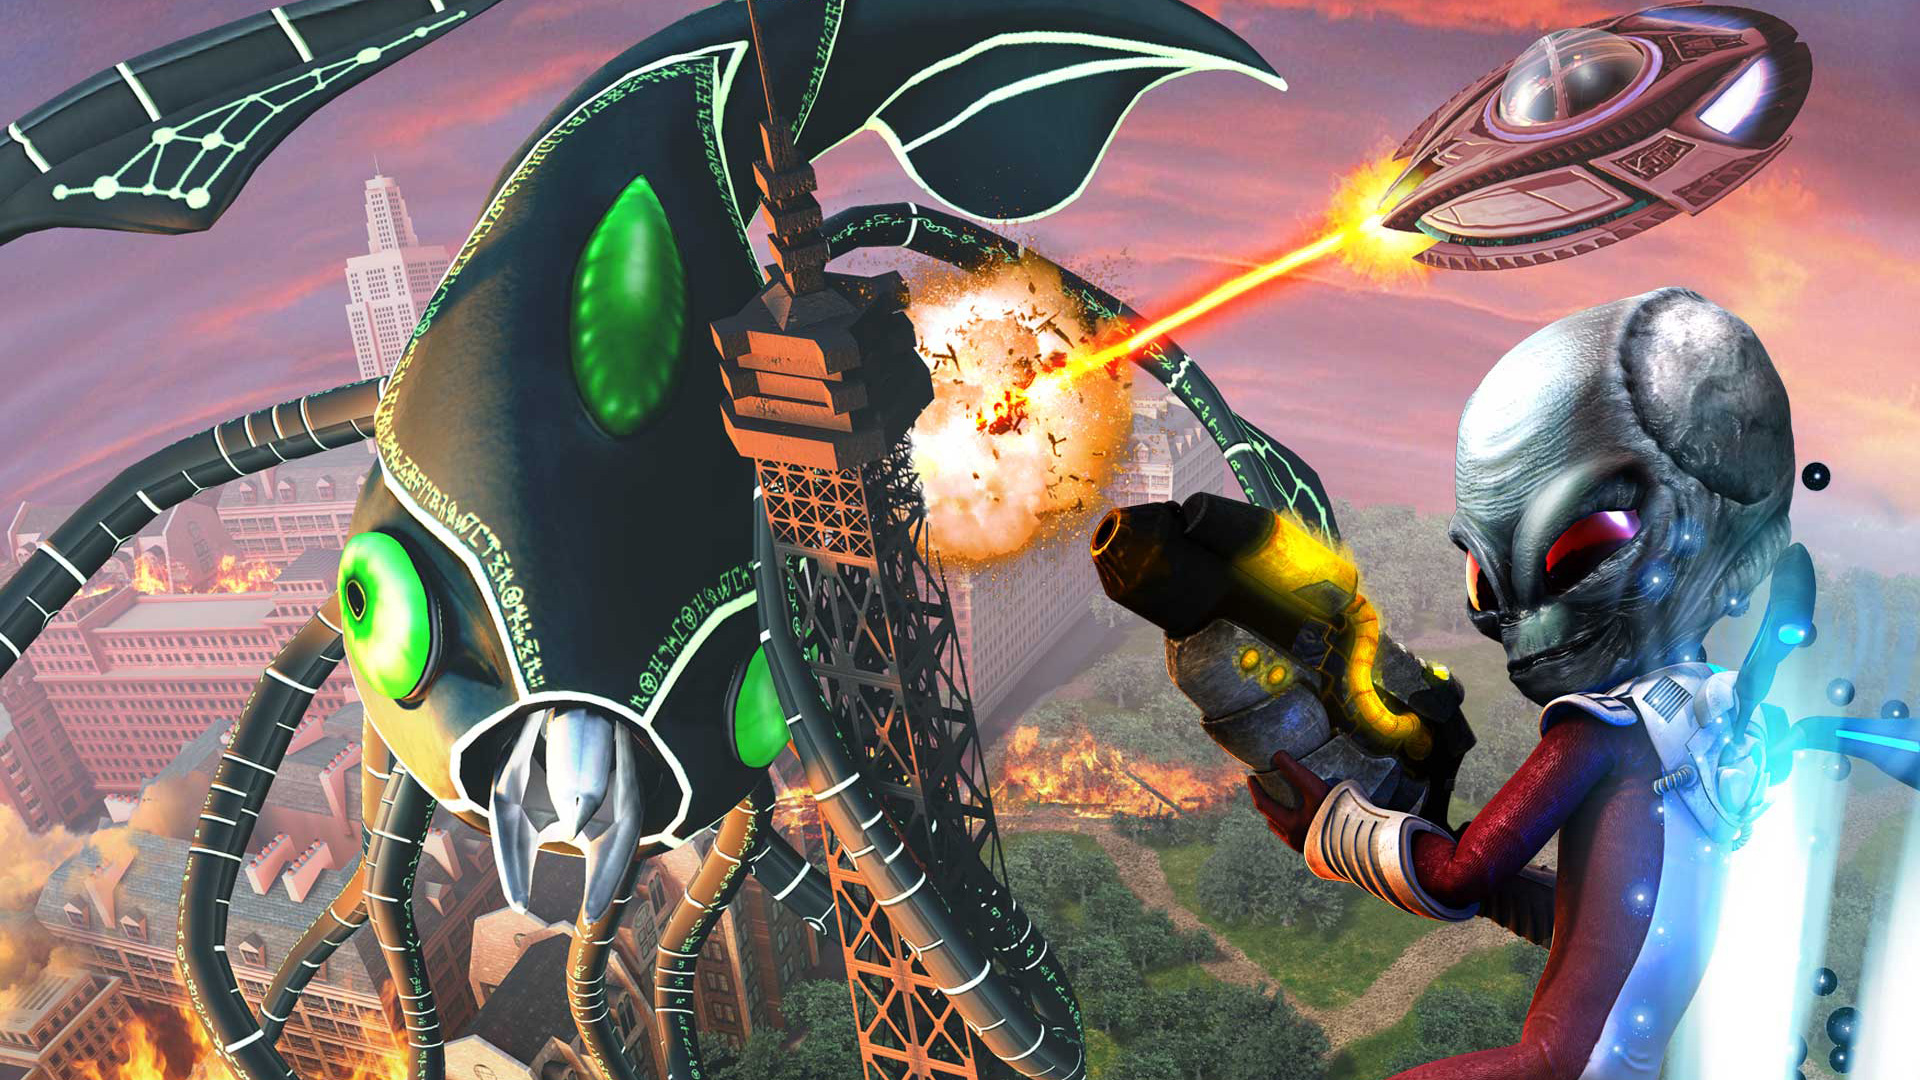 Destroy All Humans! Path of the Furon Wallpaper in 1920x1080